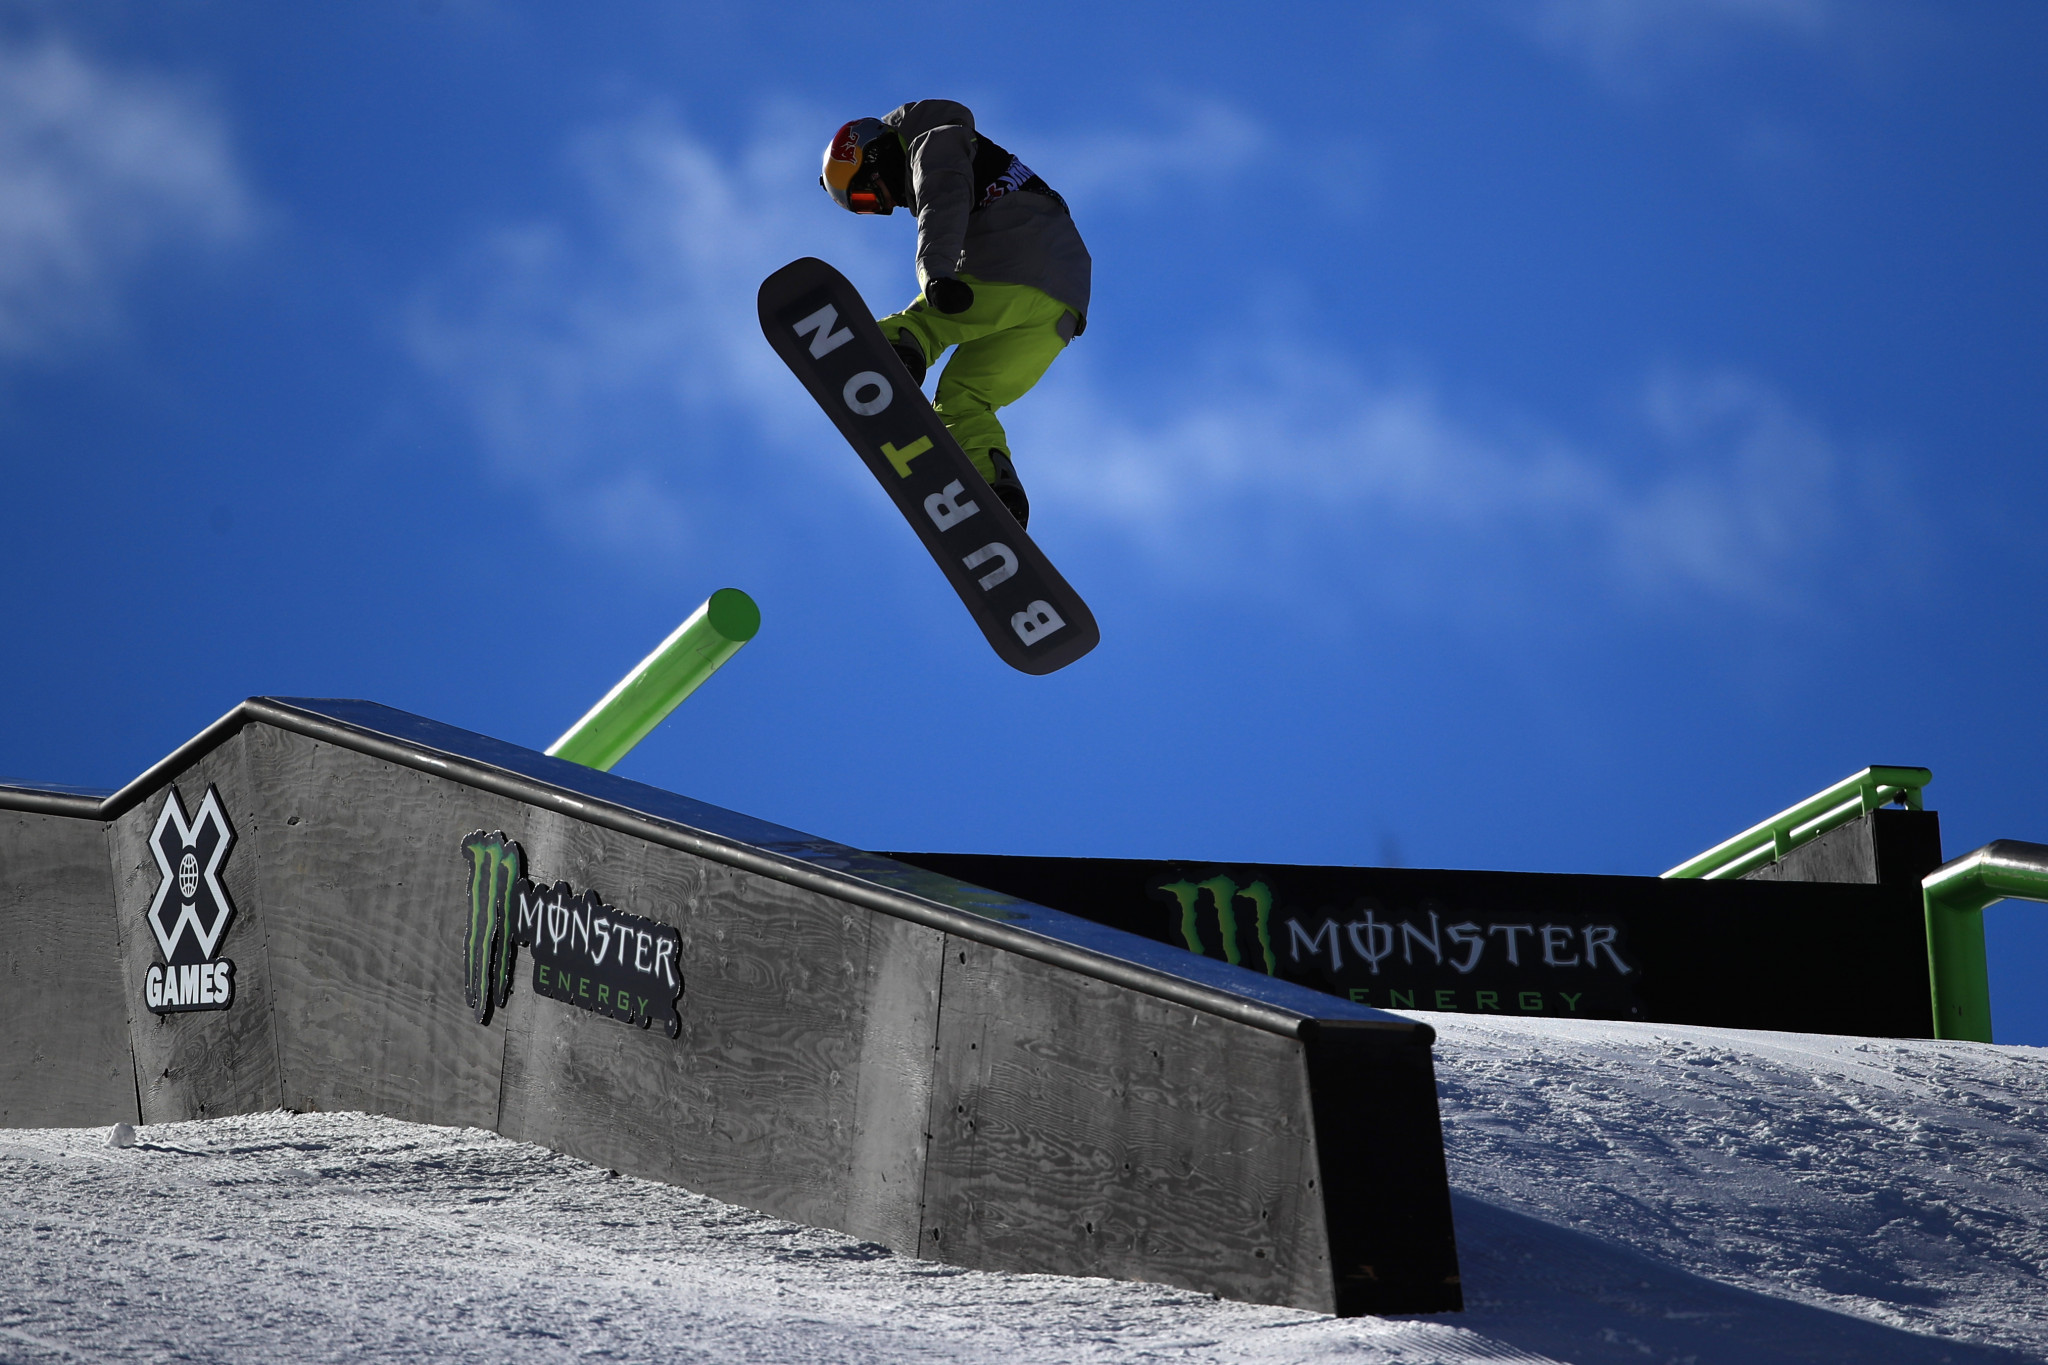 First Winter X Games event in China postponed due to coronavirus crisis